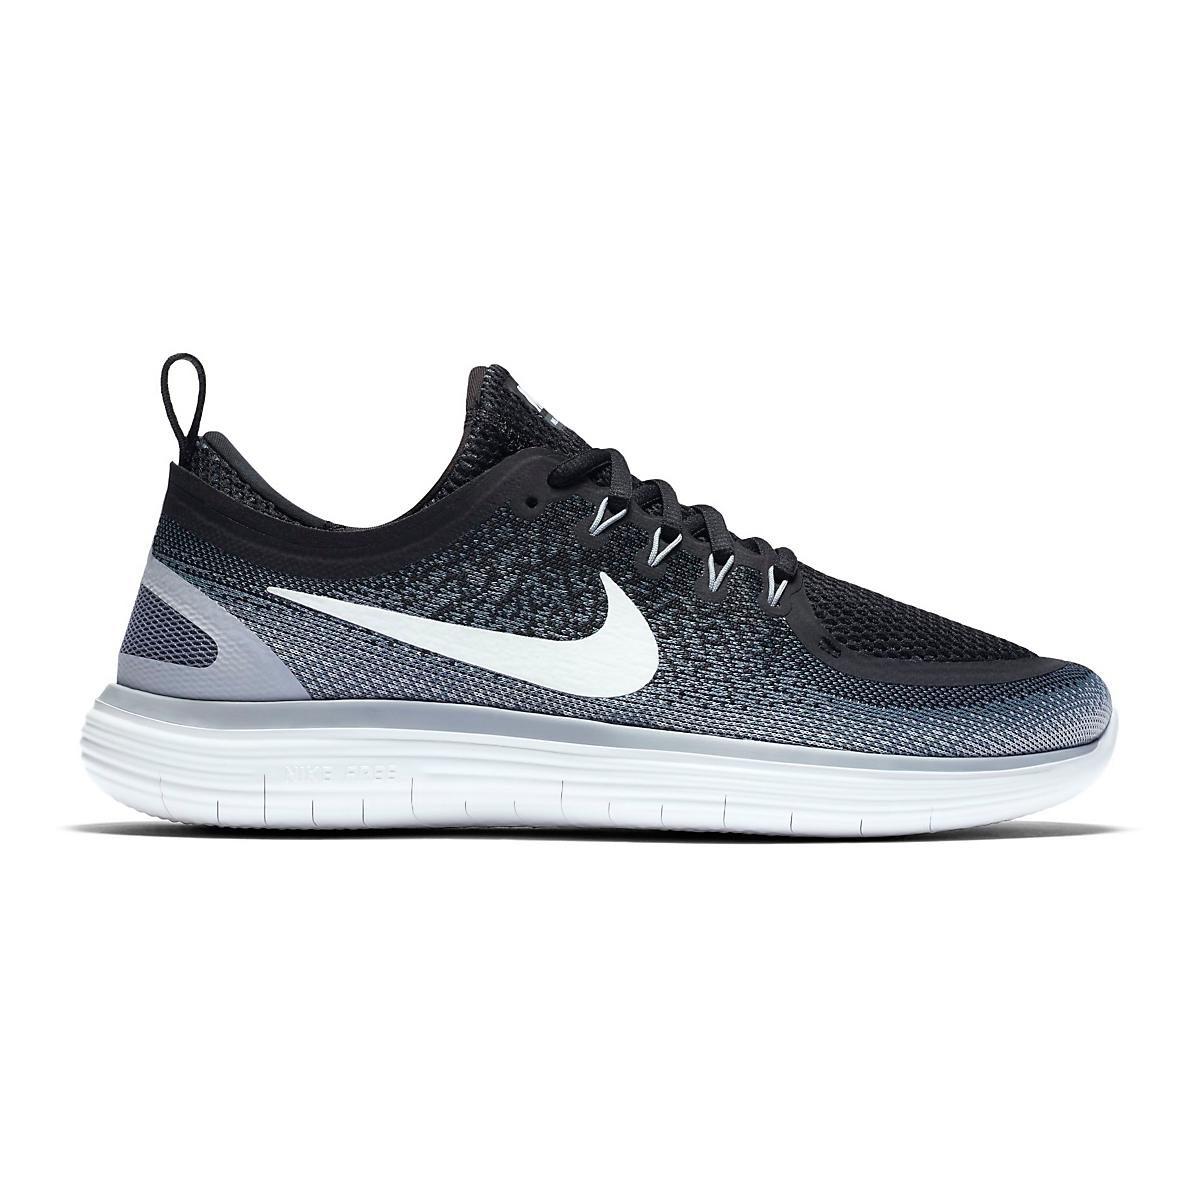 new product 0e8b6 38022 Womens Nike Free RN Distance 2 Running Shoe at Road Runner Sports